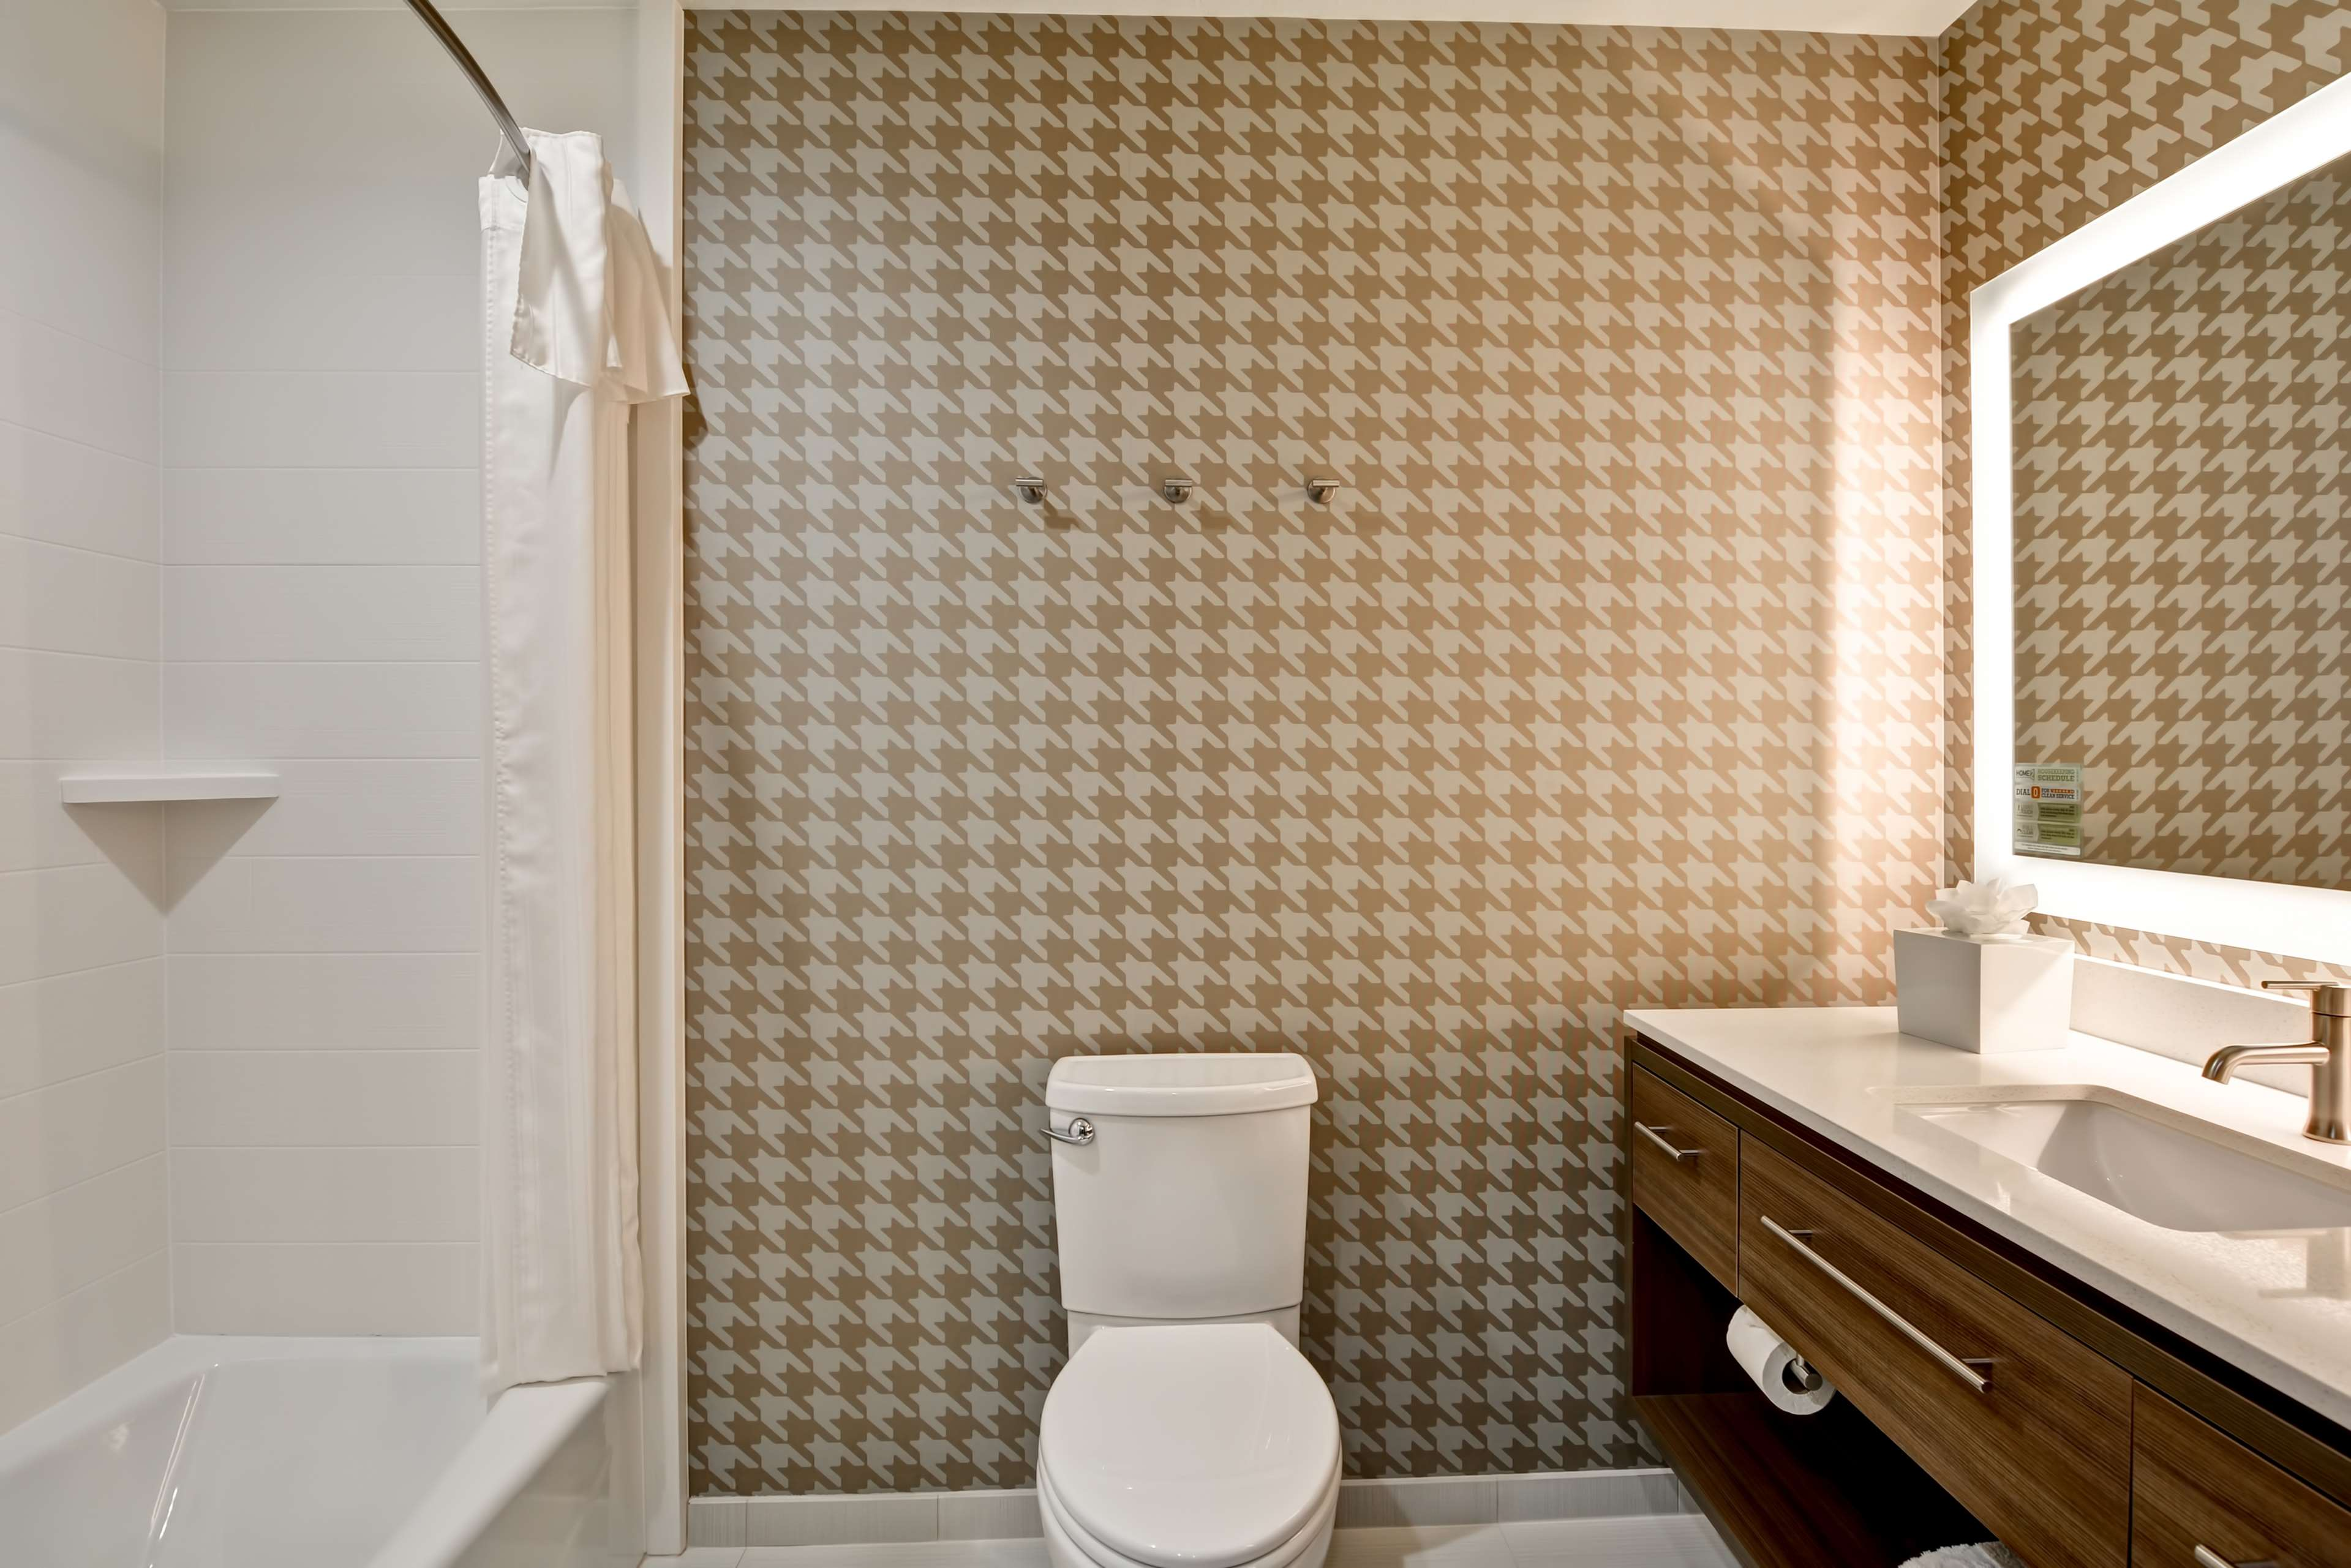 Home2 Suites by Hilton OKC Midwest City Tinker AFB image 31